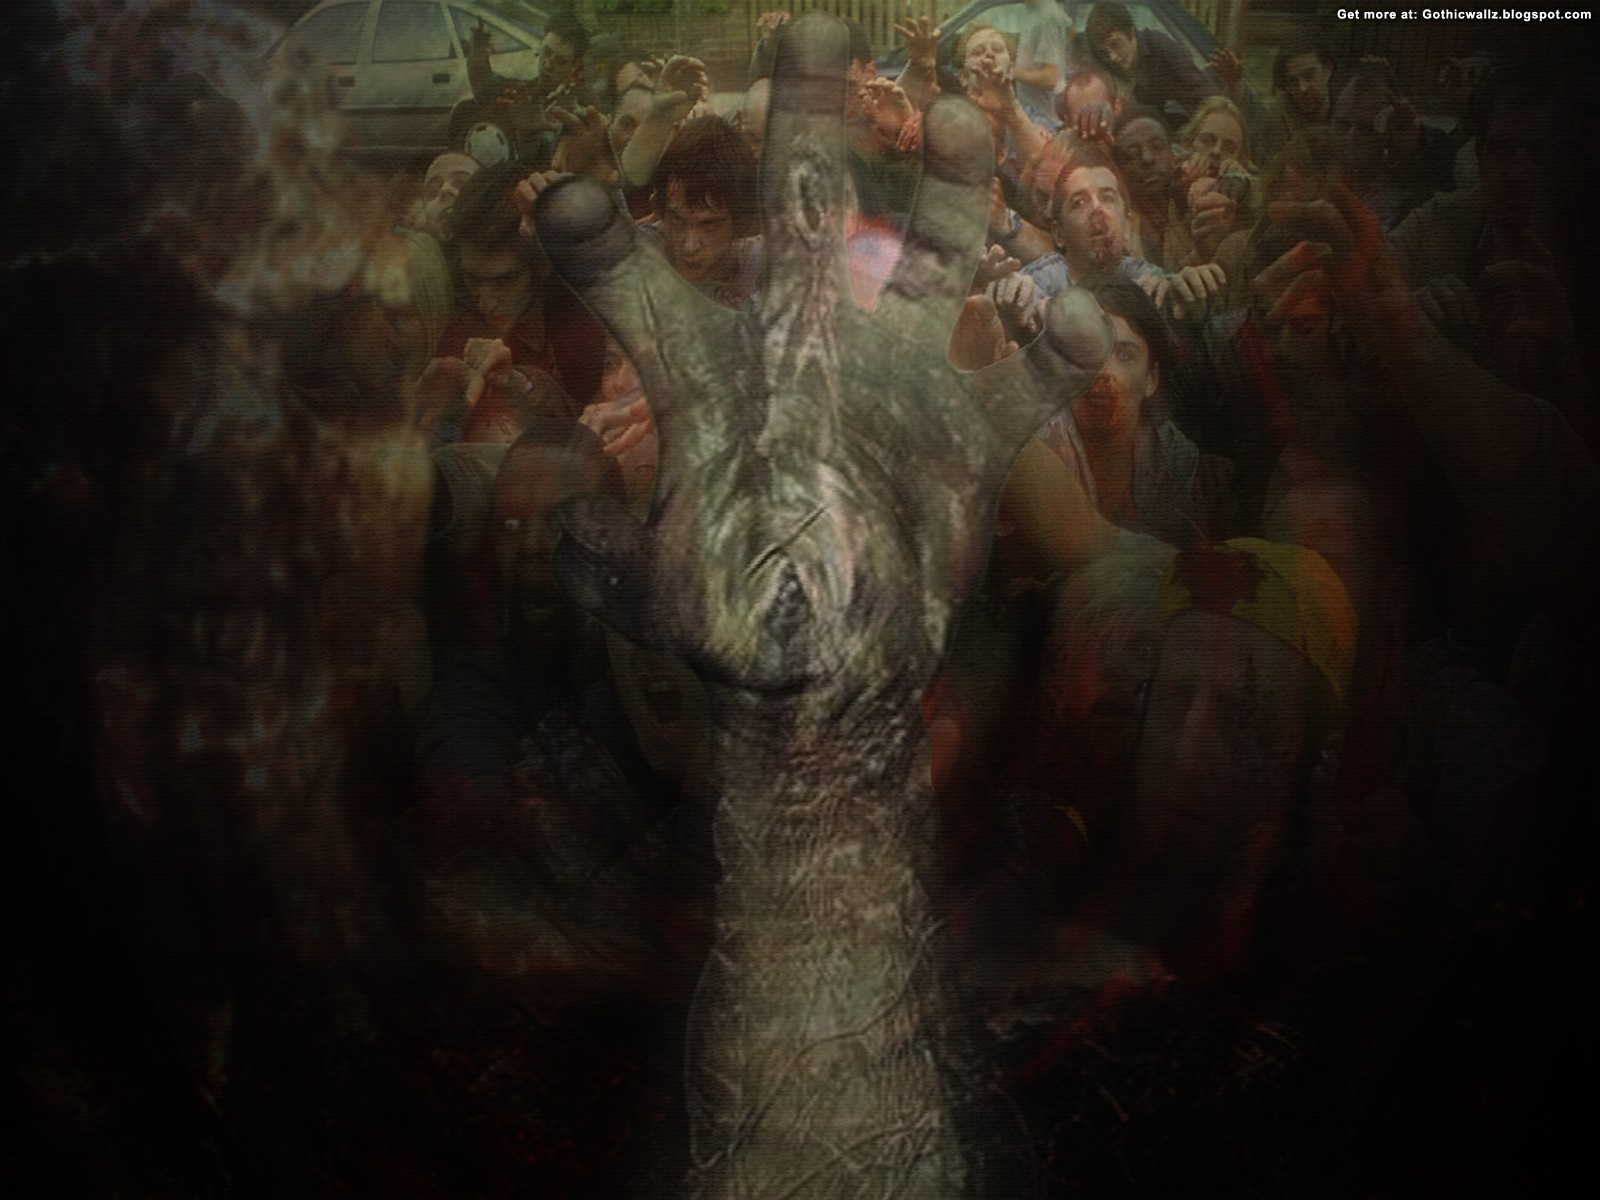 zombie | Gothic Wallpaper Download